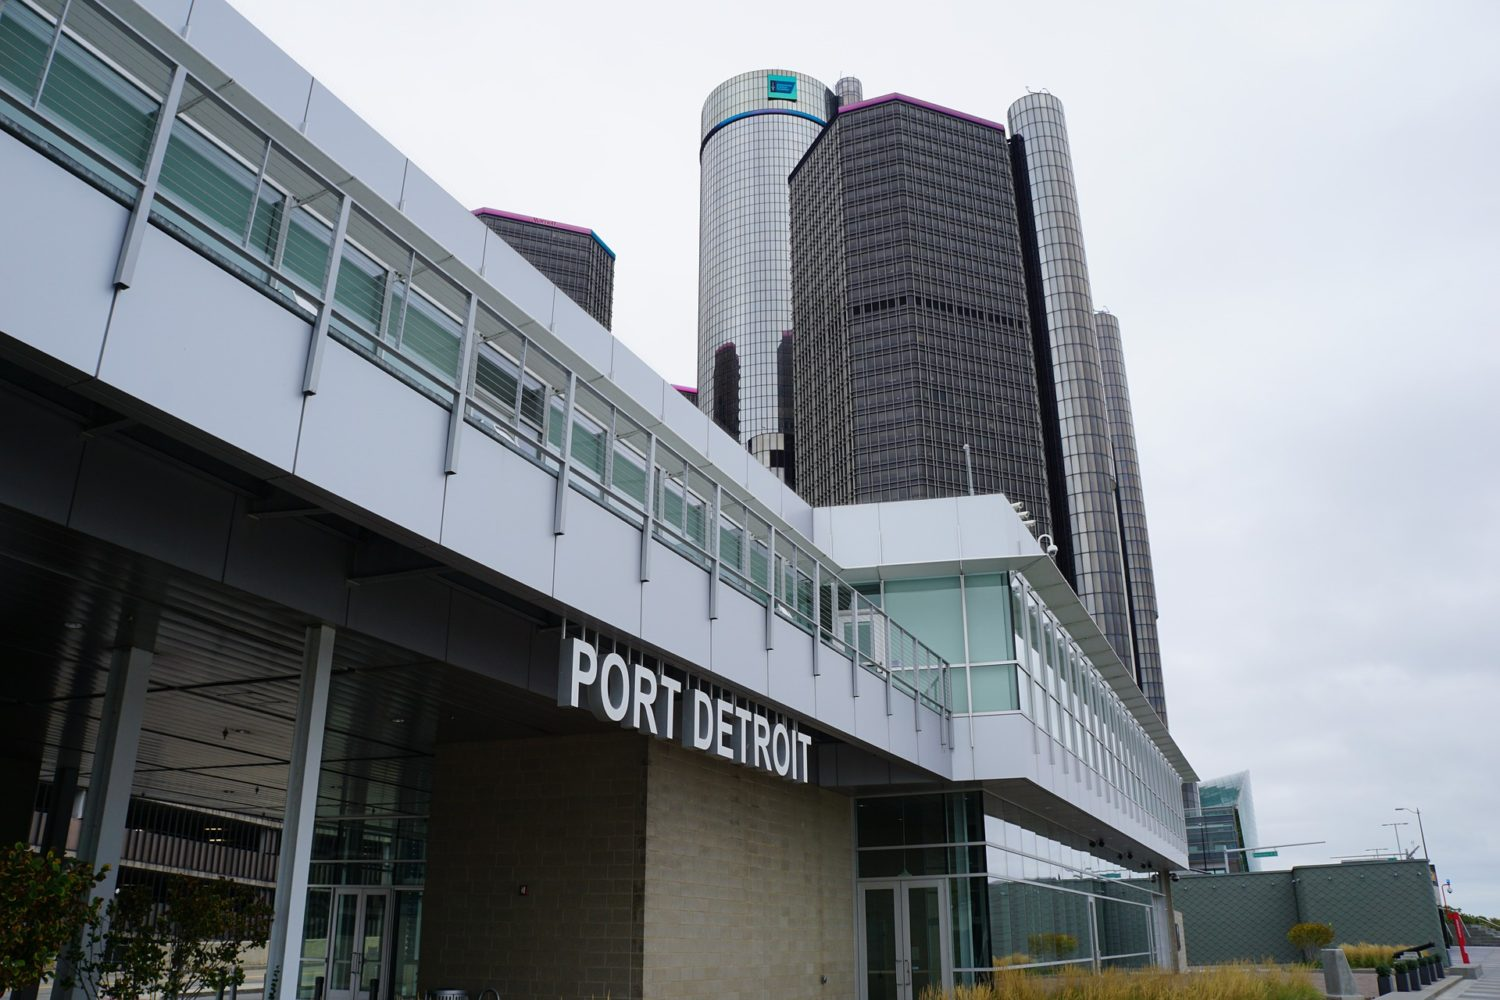 Port Detroit with General Motors' Renaissance Center in background, Detroit, Michigan